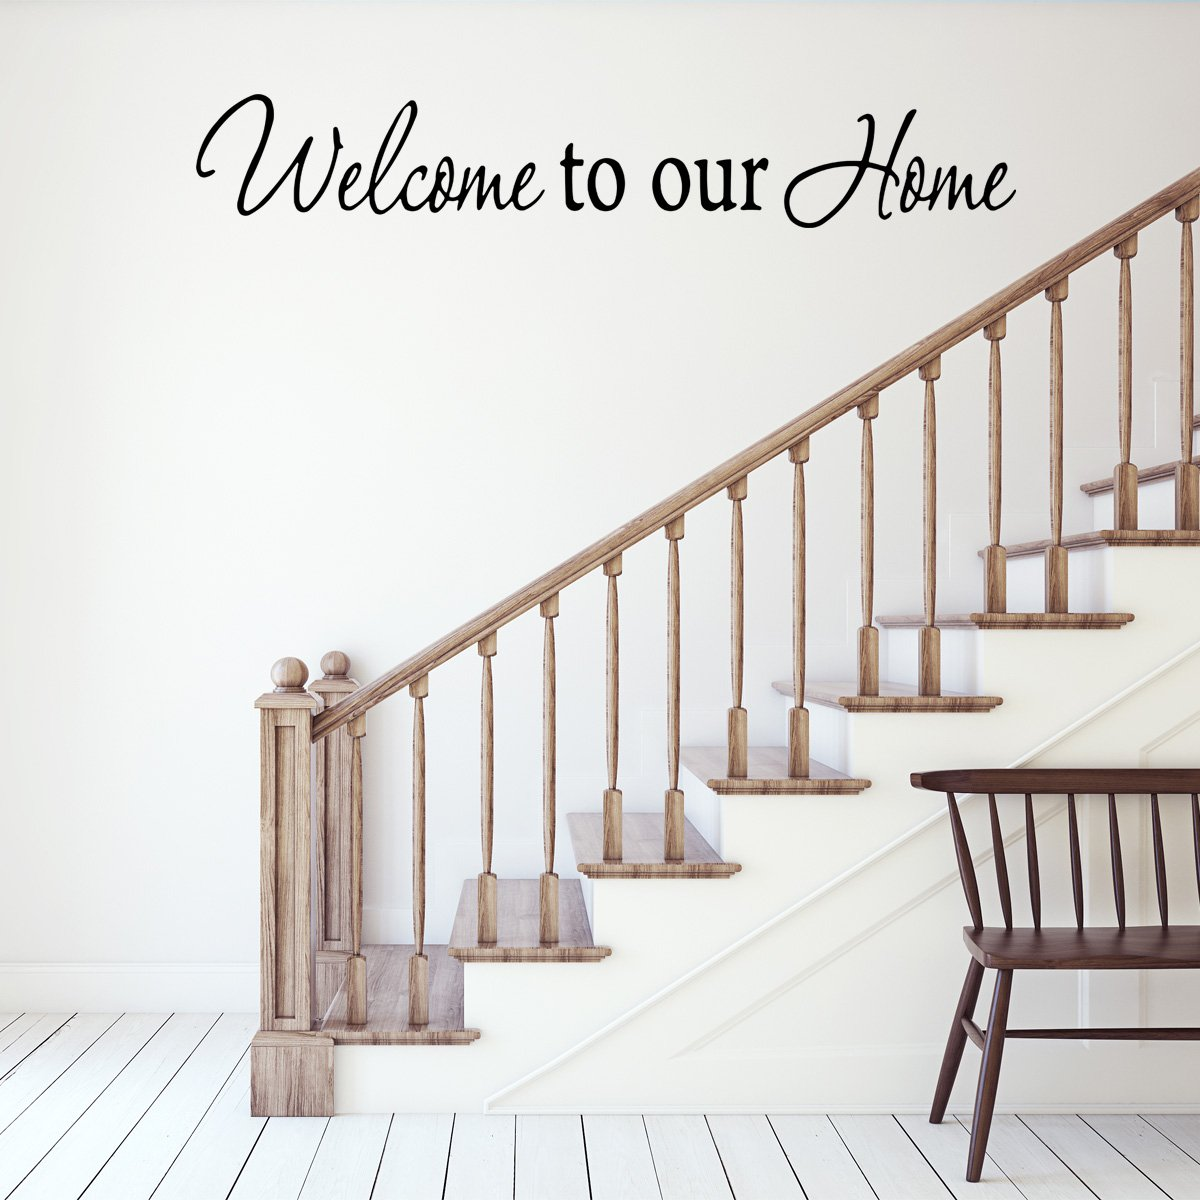 VWAQ Welcome To Our Home Wall Decal - Version 2 - VWAQ Vinyl Wall Art Quotes and Prints